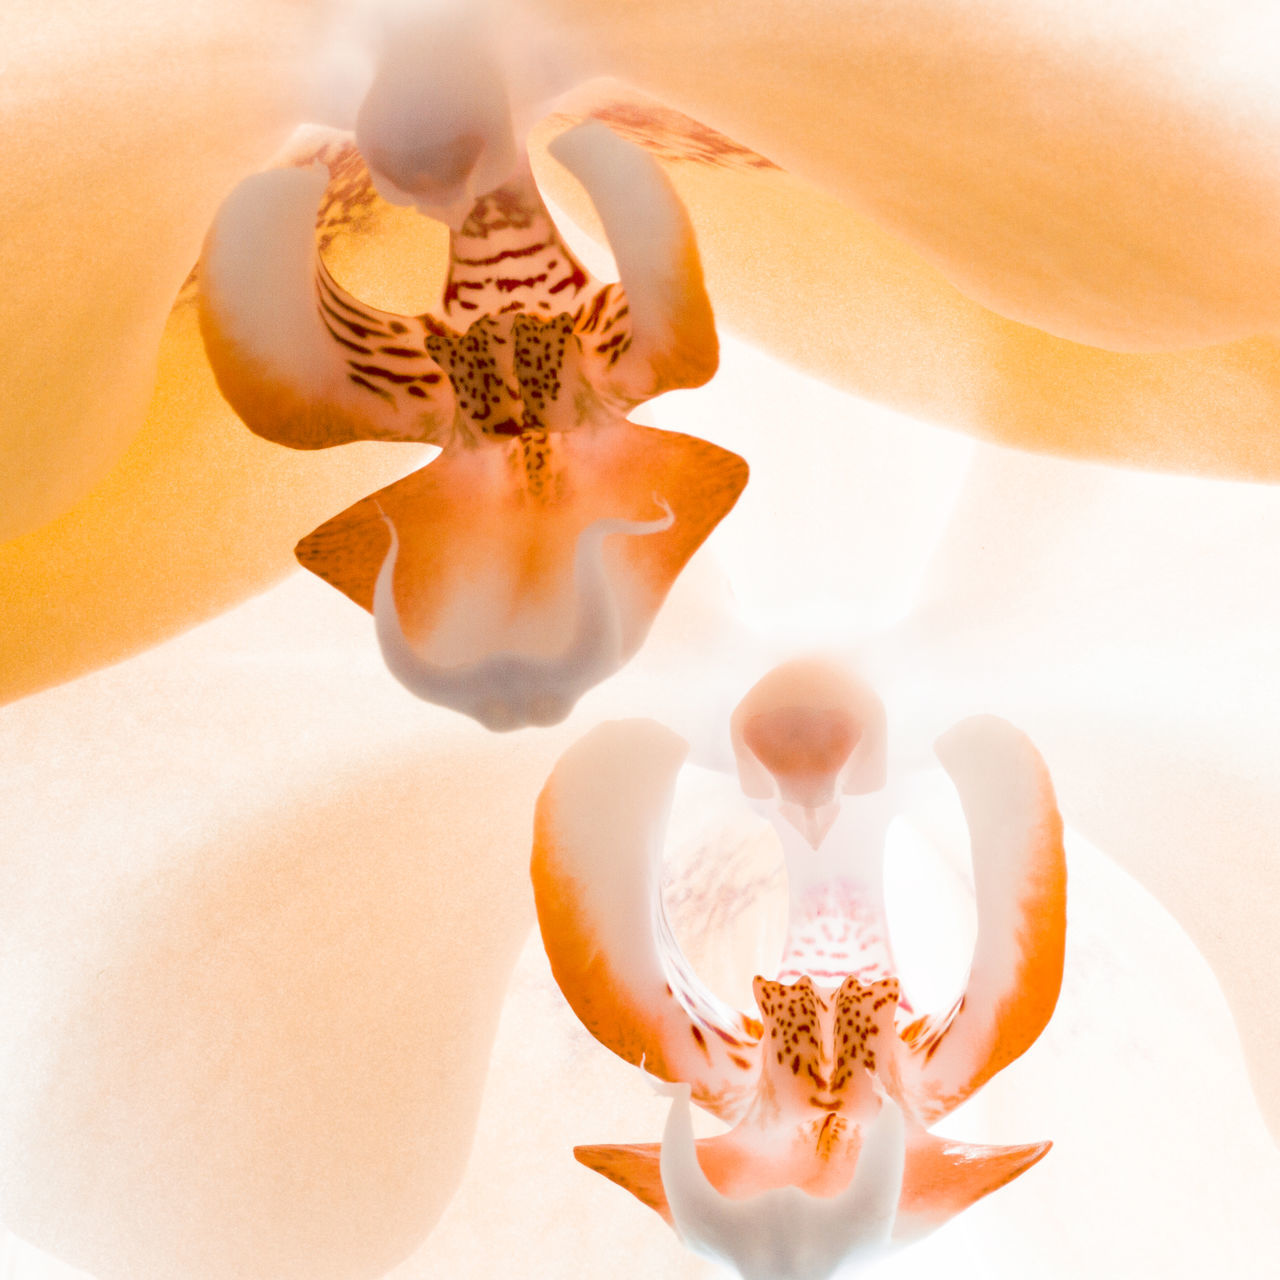 Orchid AsparagalesOrder Blooming Close-up Cropped Eukaryoter Flower Flower Head Growth In Bloom Leaf Liliopsida Macro Nature Orange Orchid Orchidaceae Part Of Petal Phalaenopsis Plant Plantae Pollen Stamens Tracheophyta